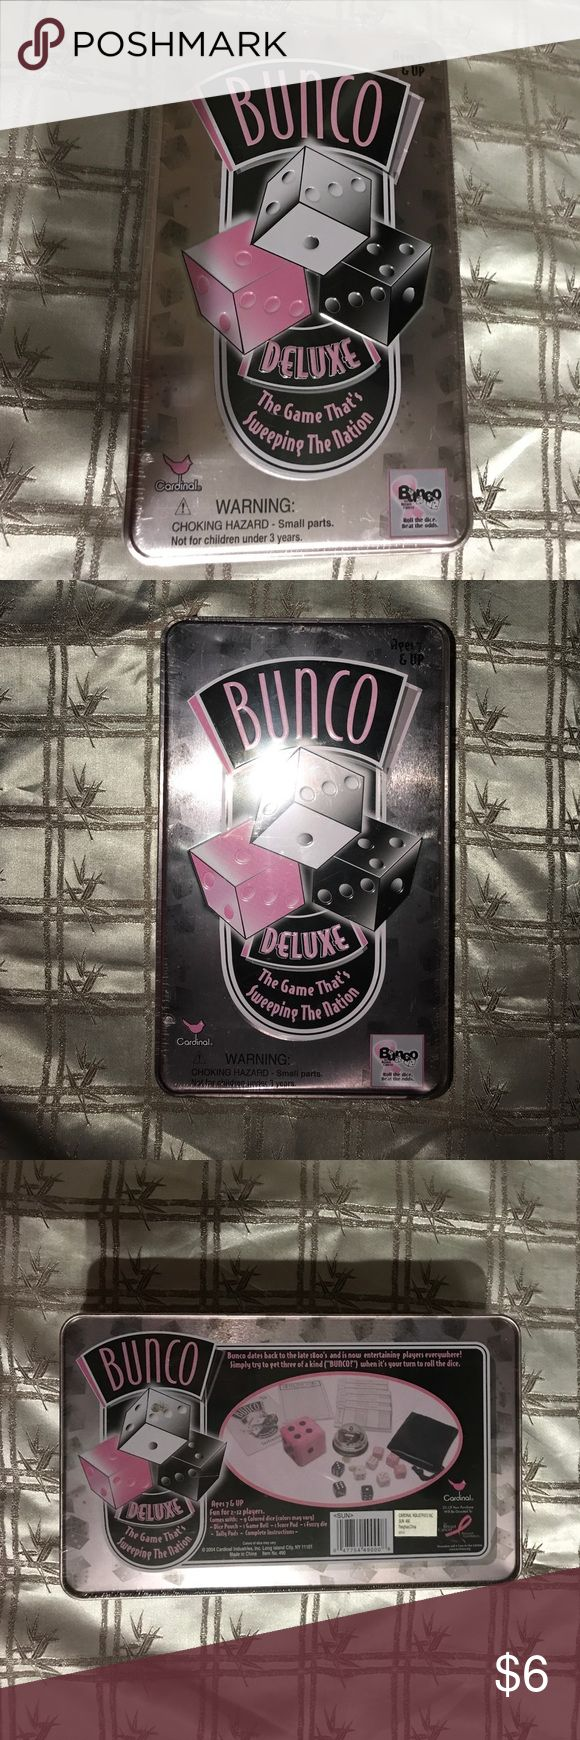 Bunco Deluxe Game NWT. Bunco dates back to the late 1800s and is now entertaining players everywhere. Simply try to get three of a kind, when its your turn to roll the dice. Ages 7 and up. Fun for 2 to 12 players. Everything you need is in this decorative tin: dice in a handy pouch, score sheets, bell and a large fuzzy die. Cardinal Other